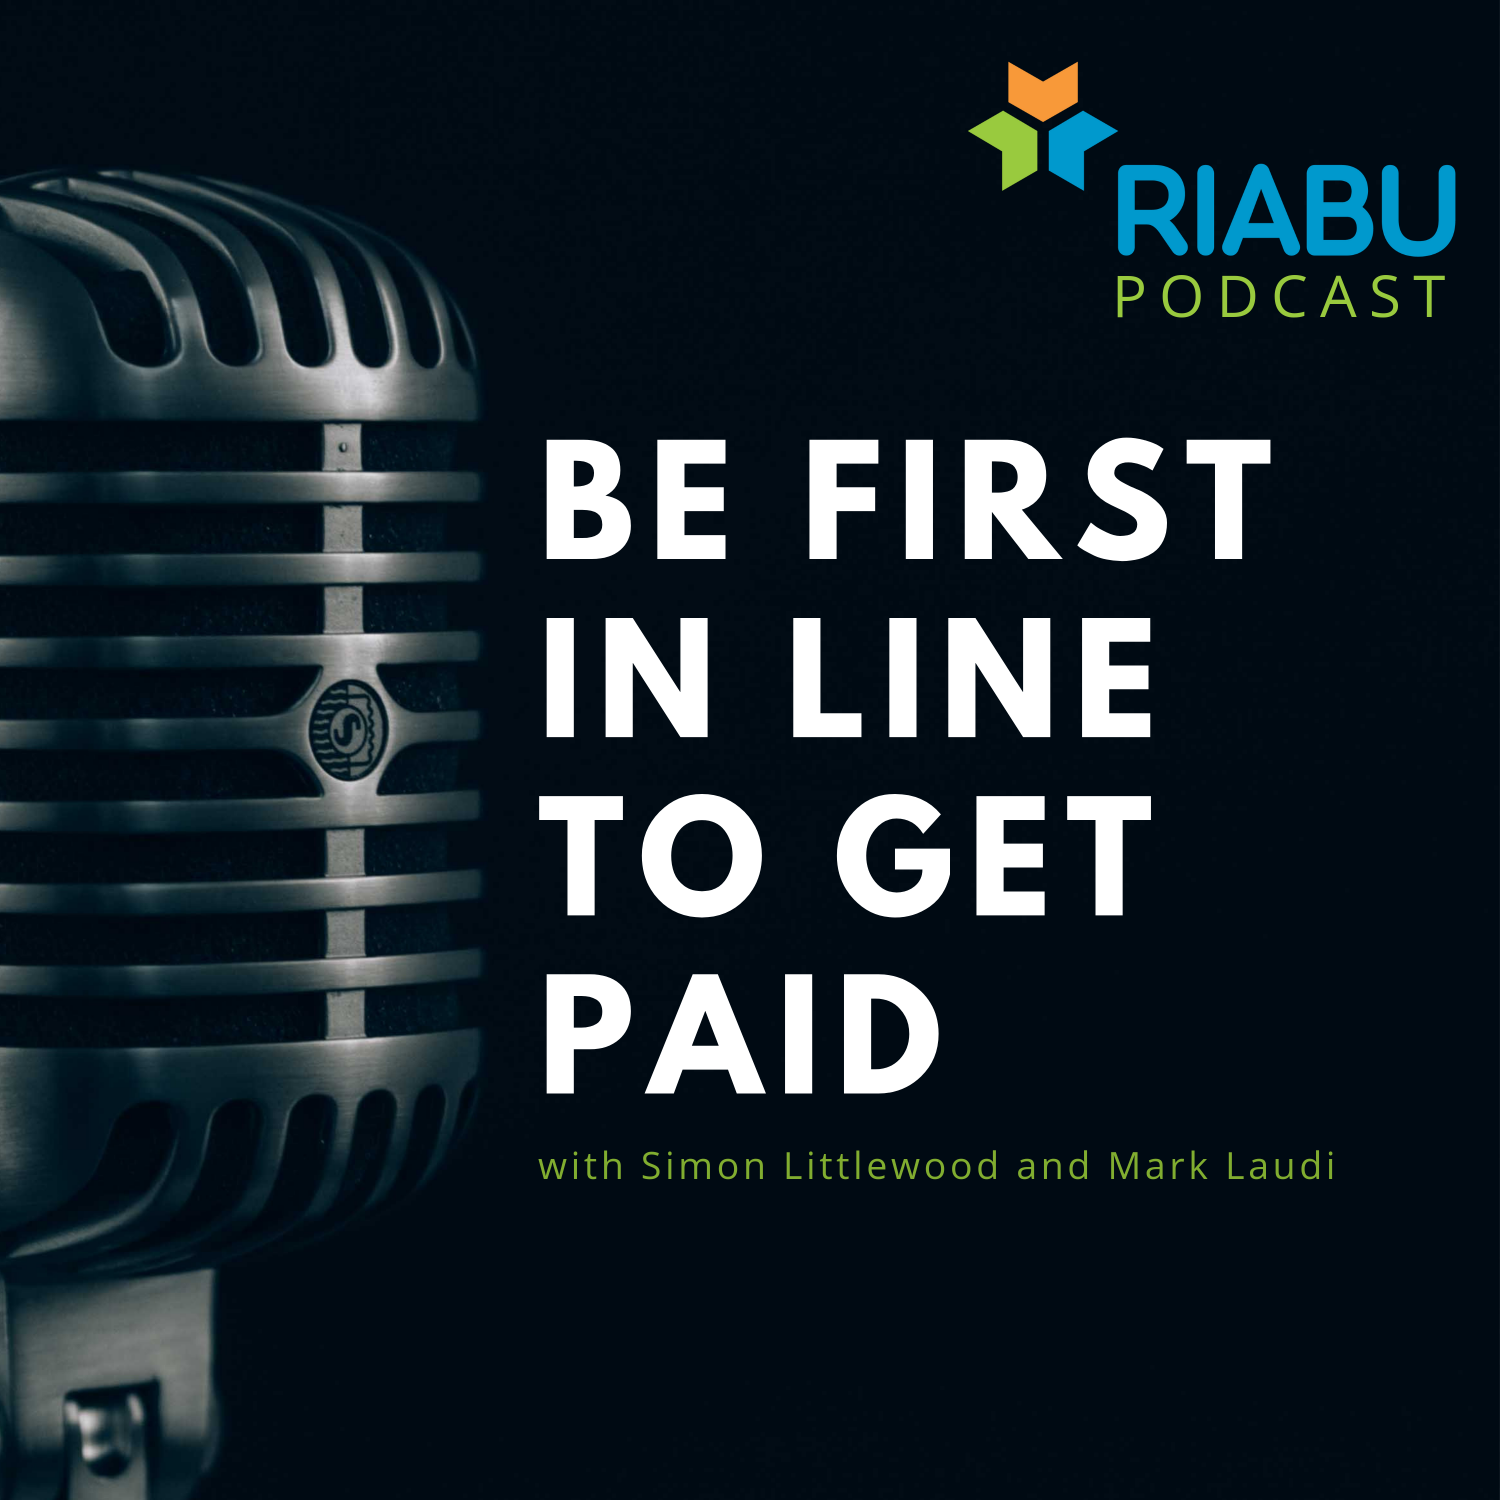 Be first in line to get paid